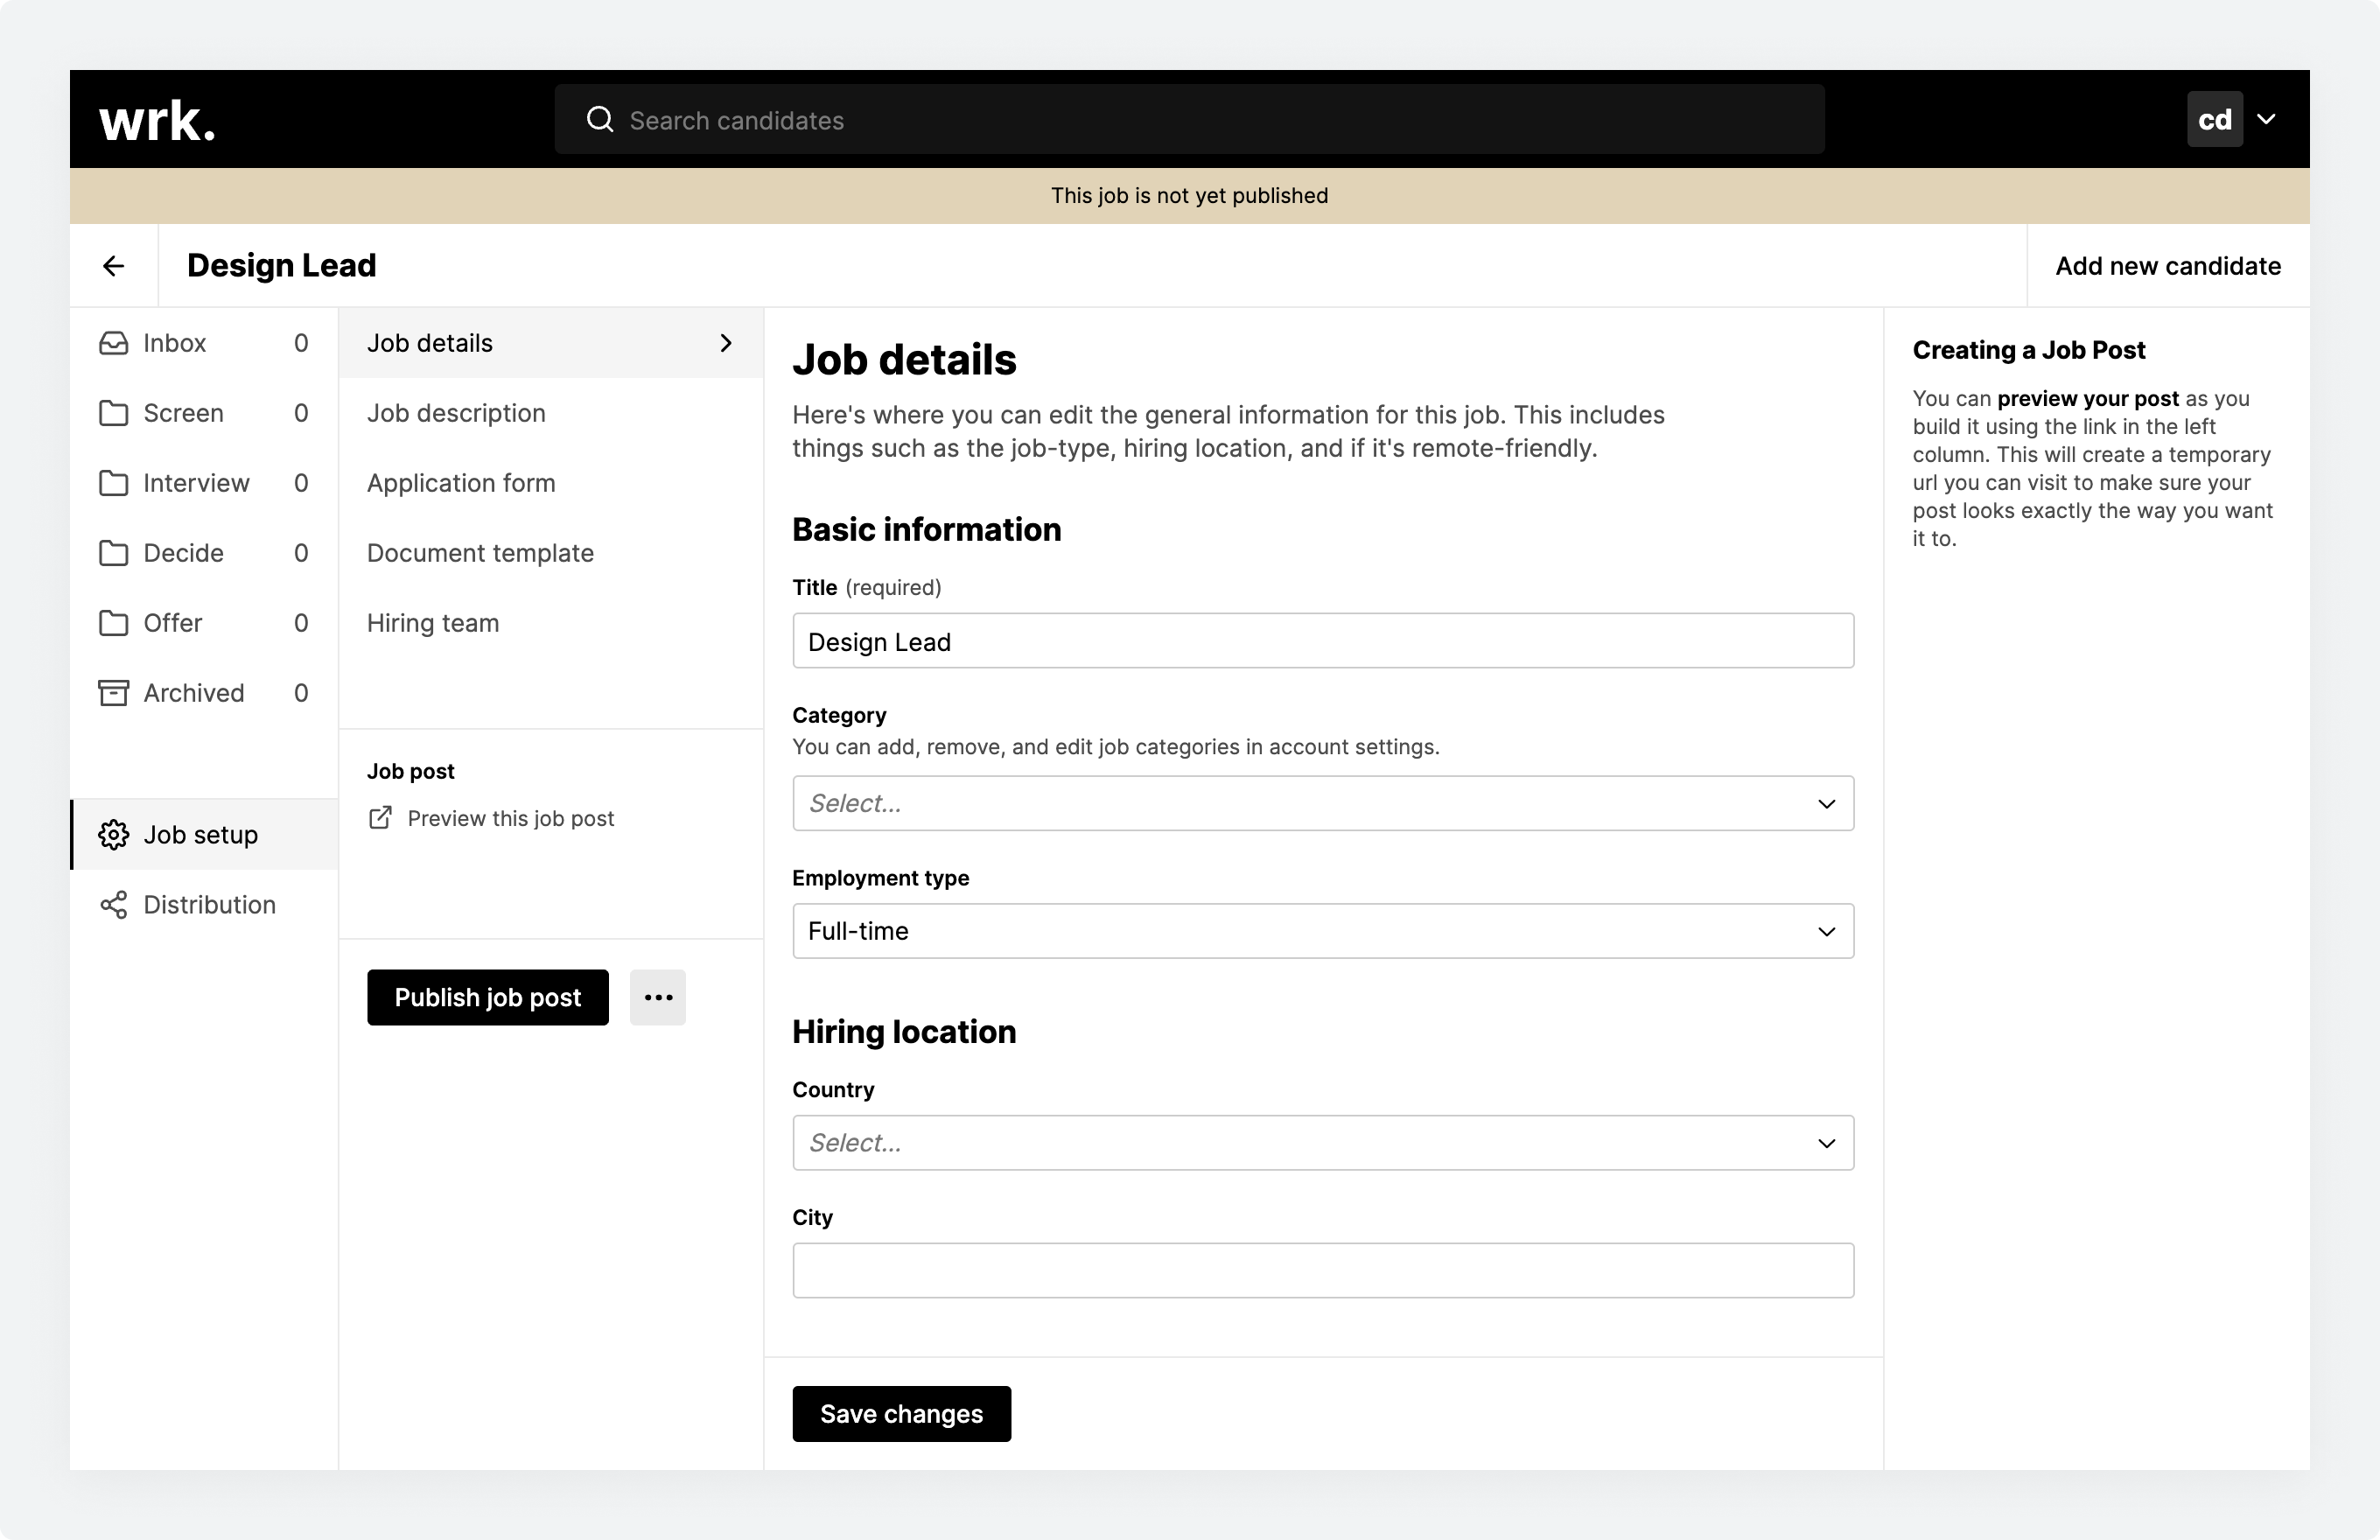 The Job details screen within Wrk's Job setup section